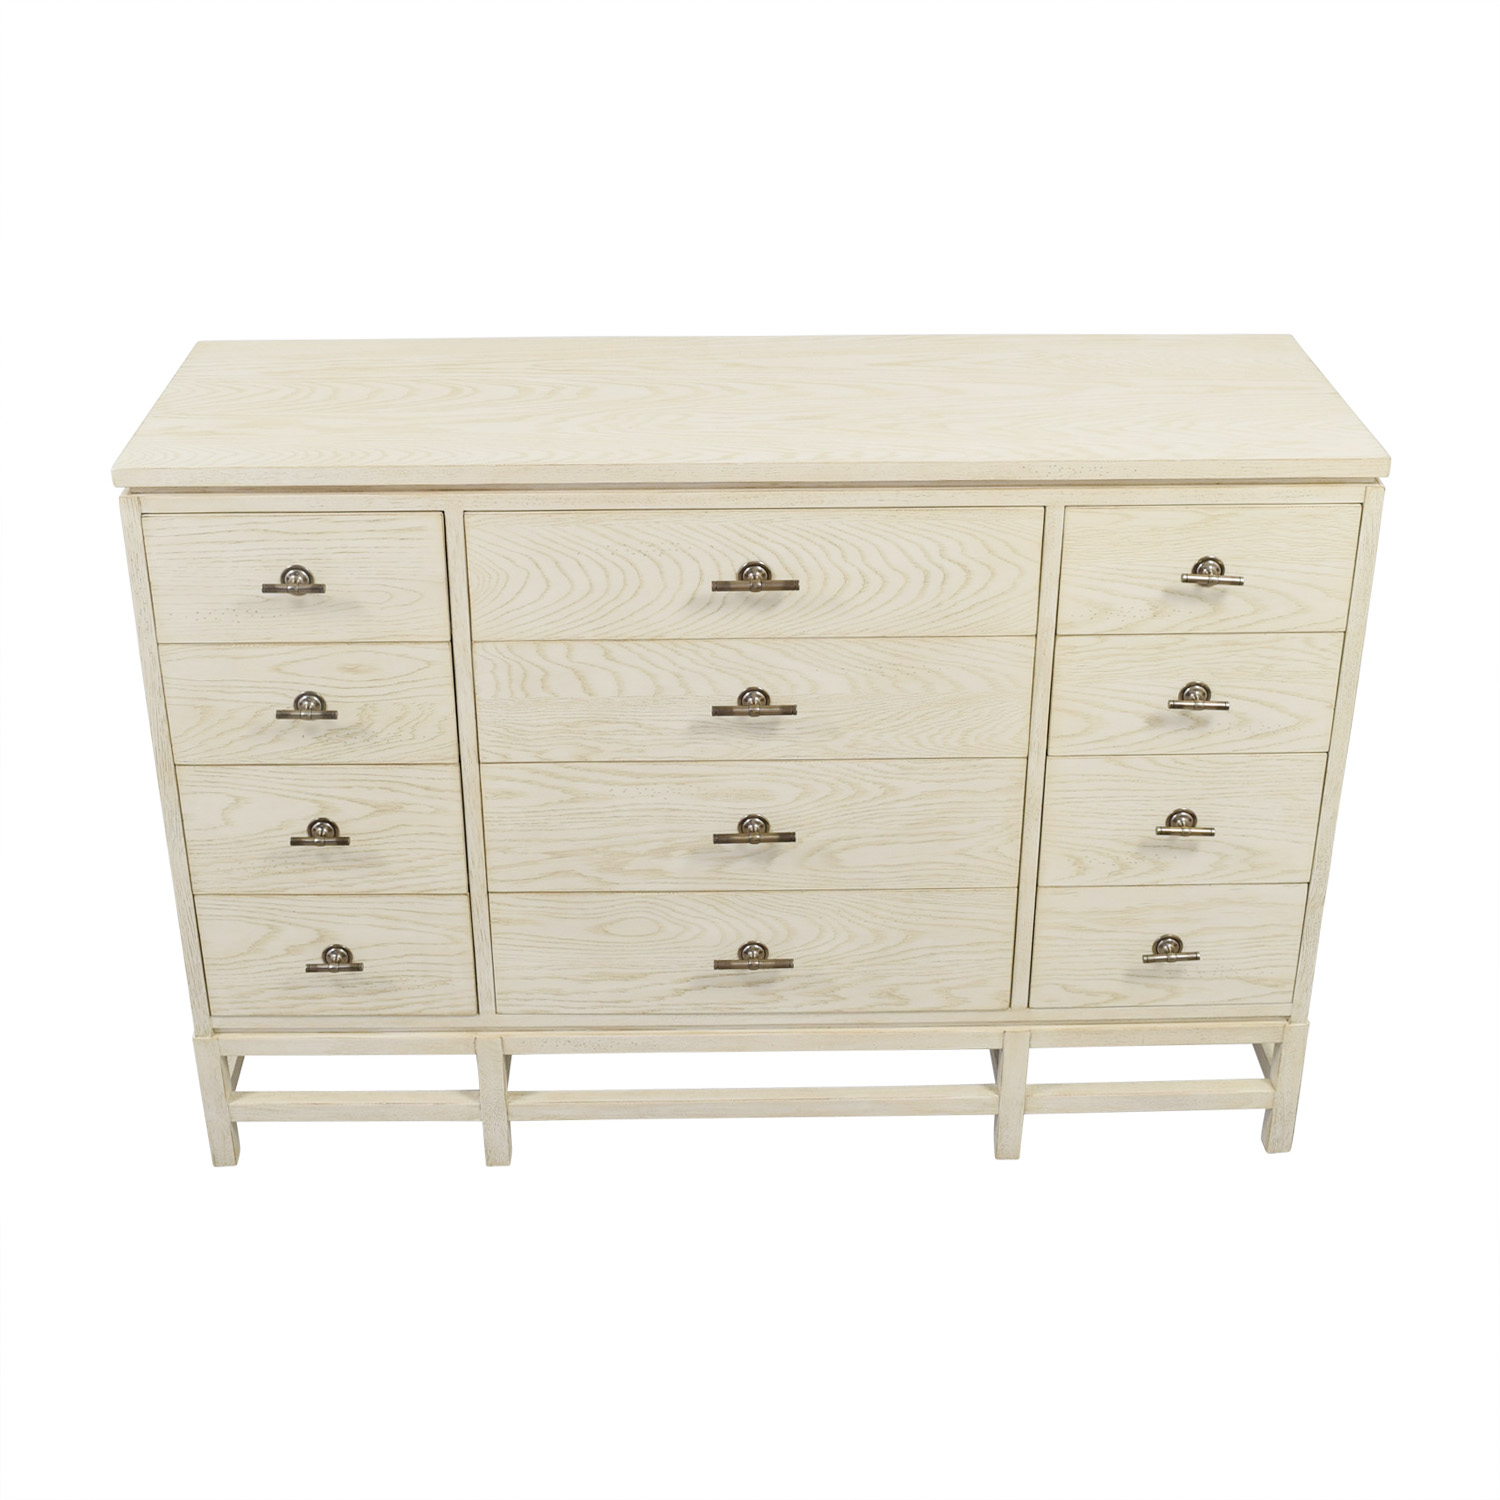 Stanley Furniture Stanley Furniture Whitewashed Wood Twelve-Drawer Dresser nj